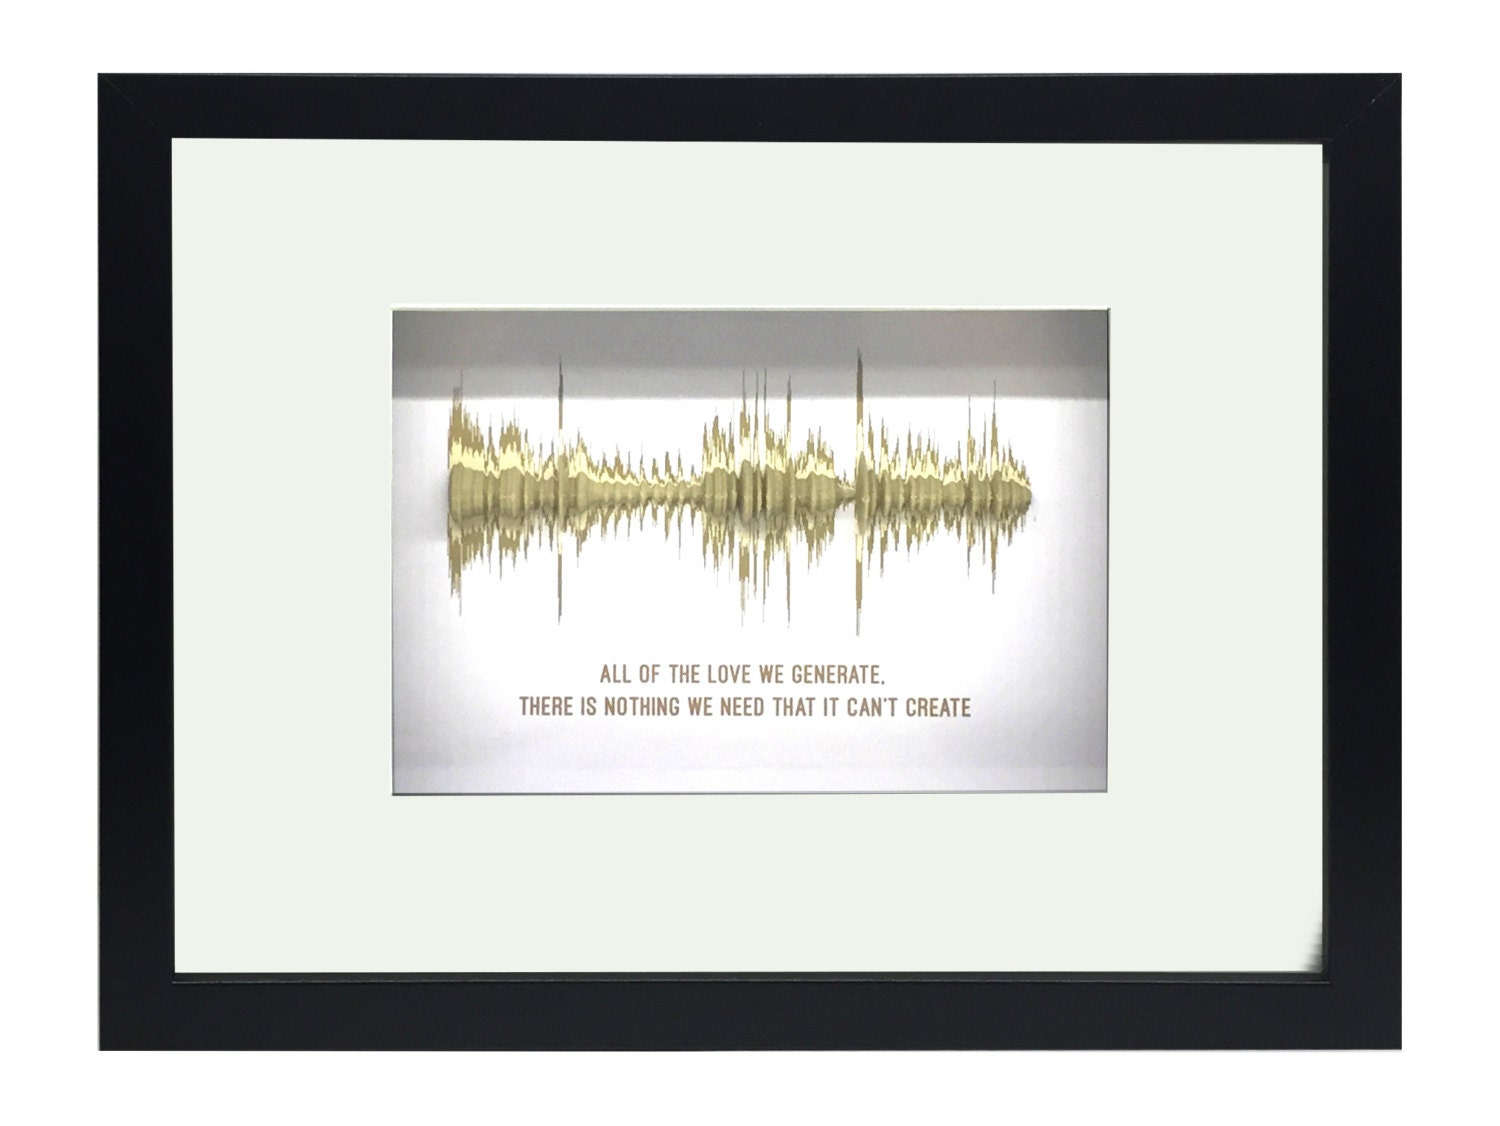 Wedding Present Box Elder Lyrics : Song lyrics 3D sound wave art Wedding song display Great